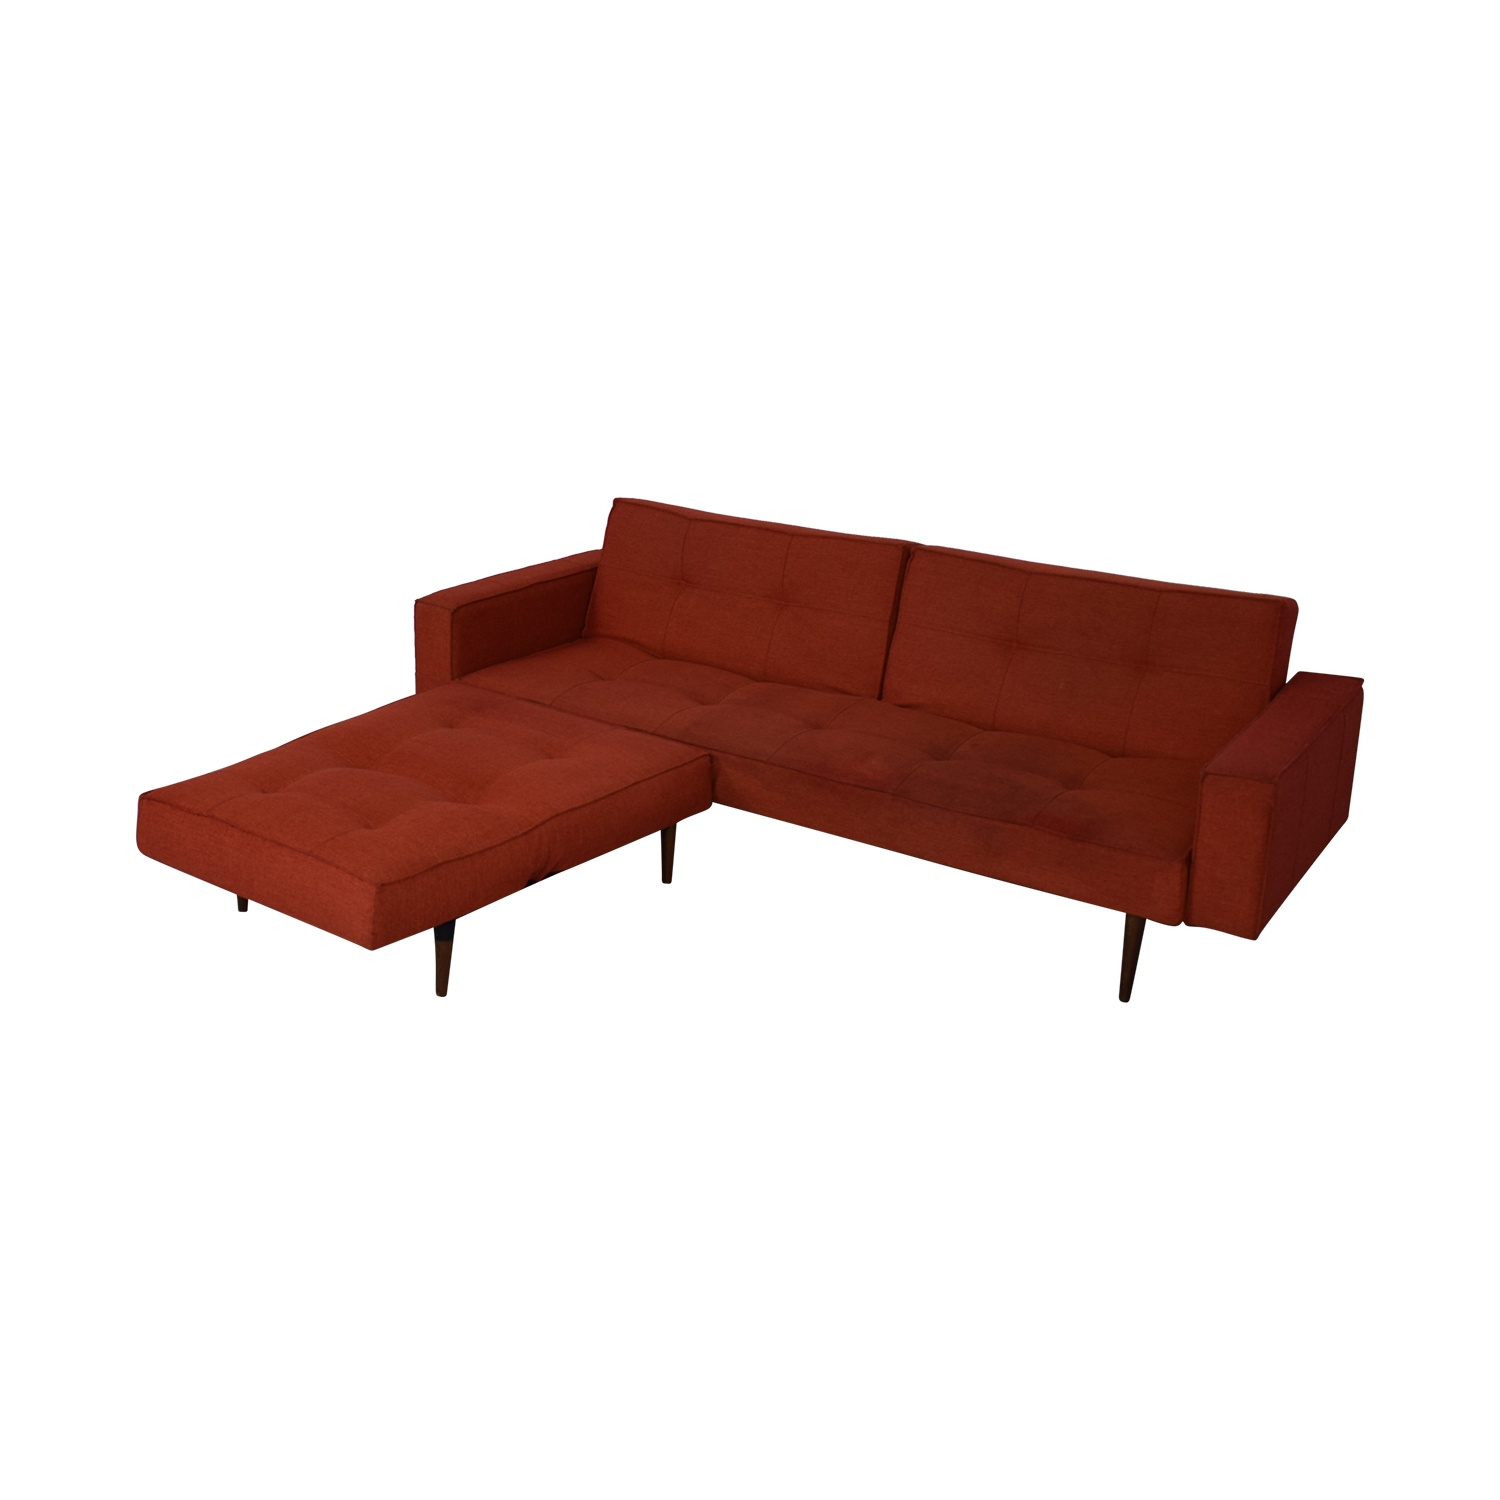 81% OFF - Innovation Living Innovation Living Convertible Sofa with  Convertible Ottoman / Sofas